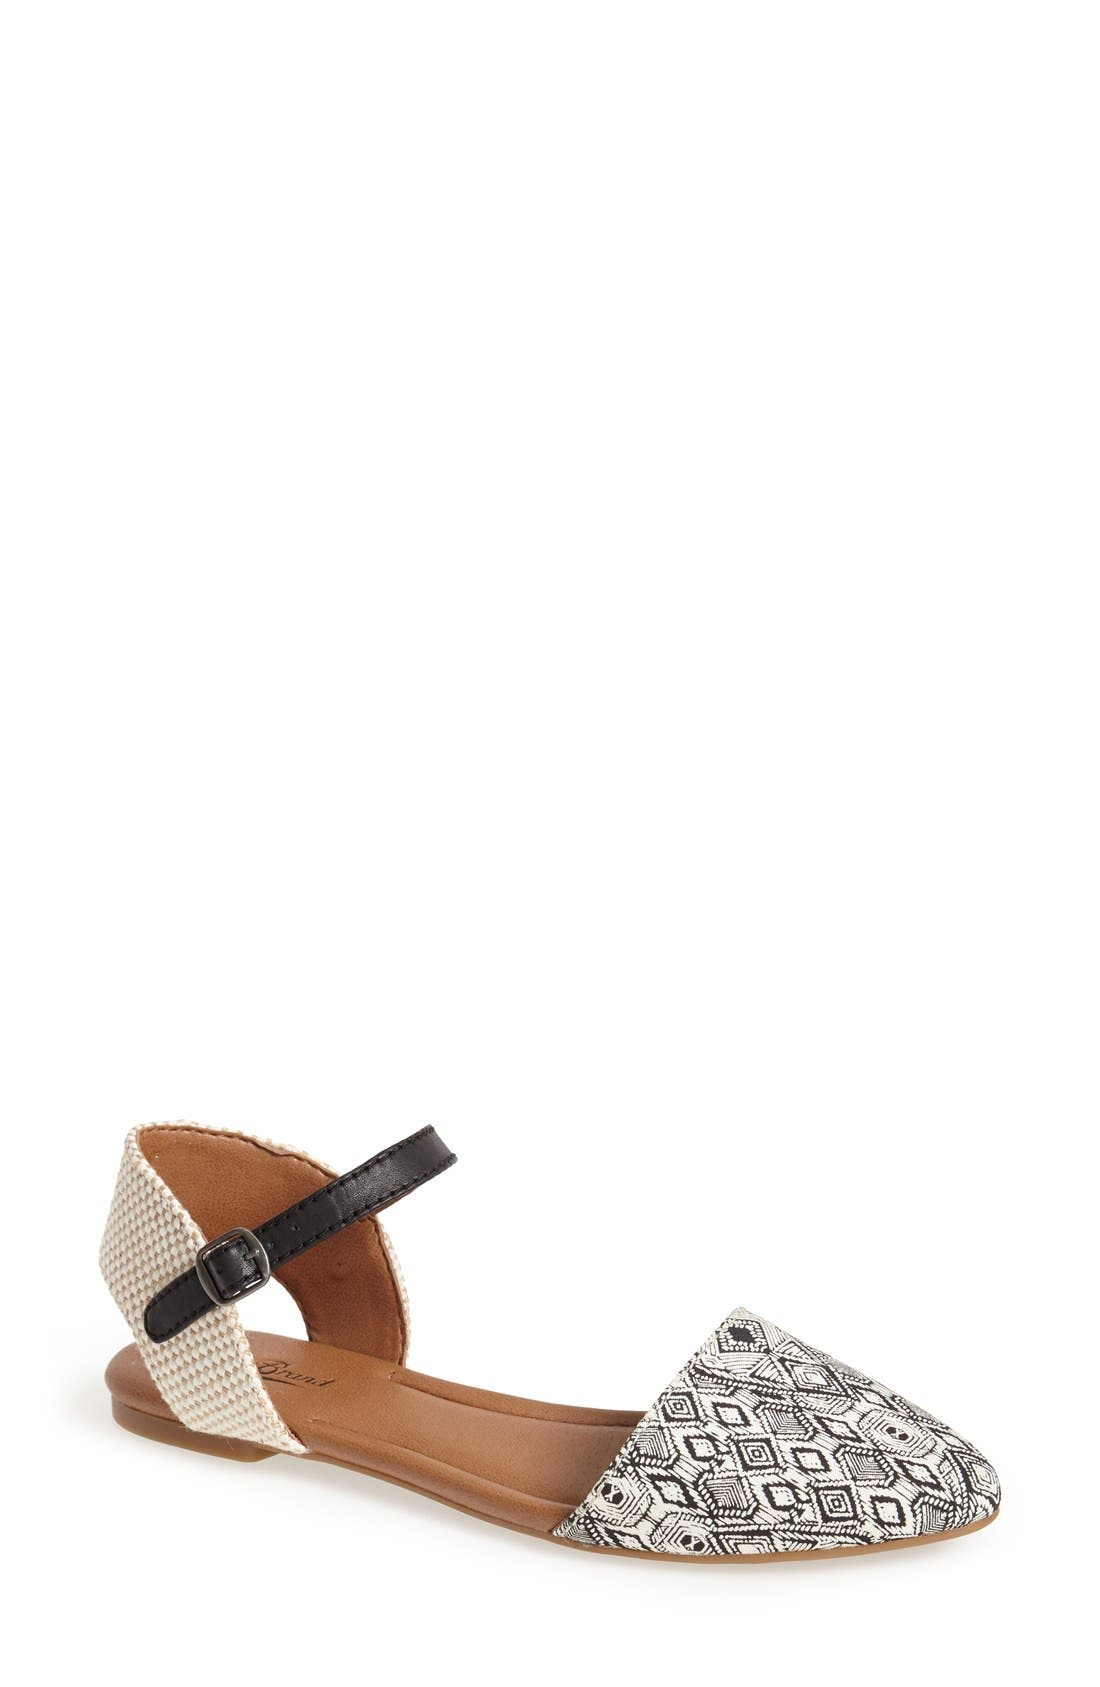 Alternate Image 1 Selected - Lucky Brand 'Abbee' d'Orsay Flat